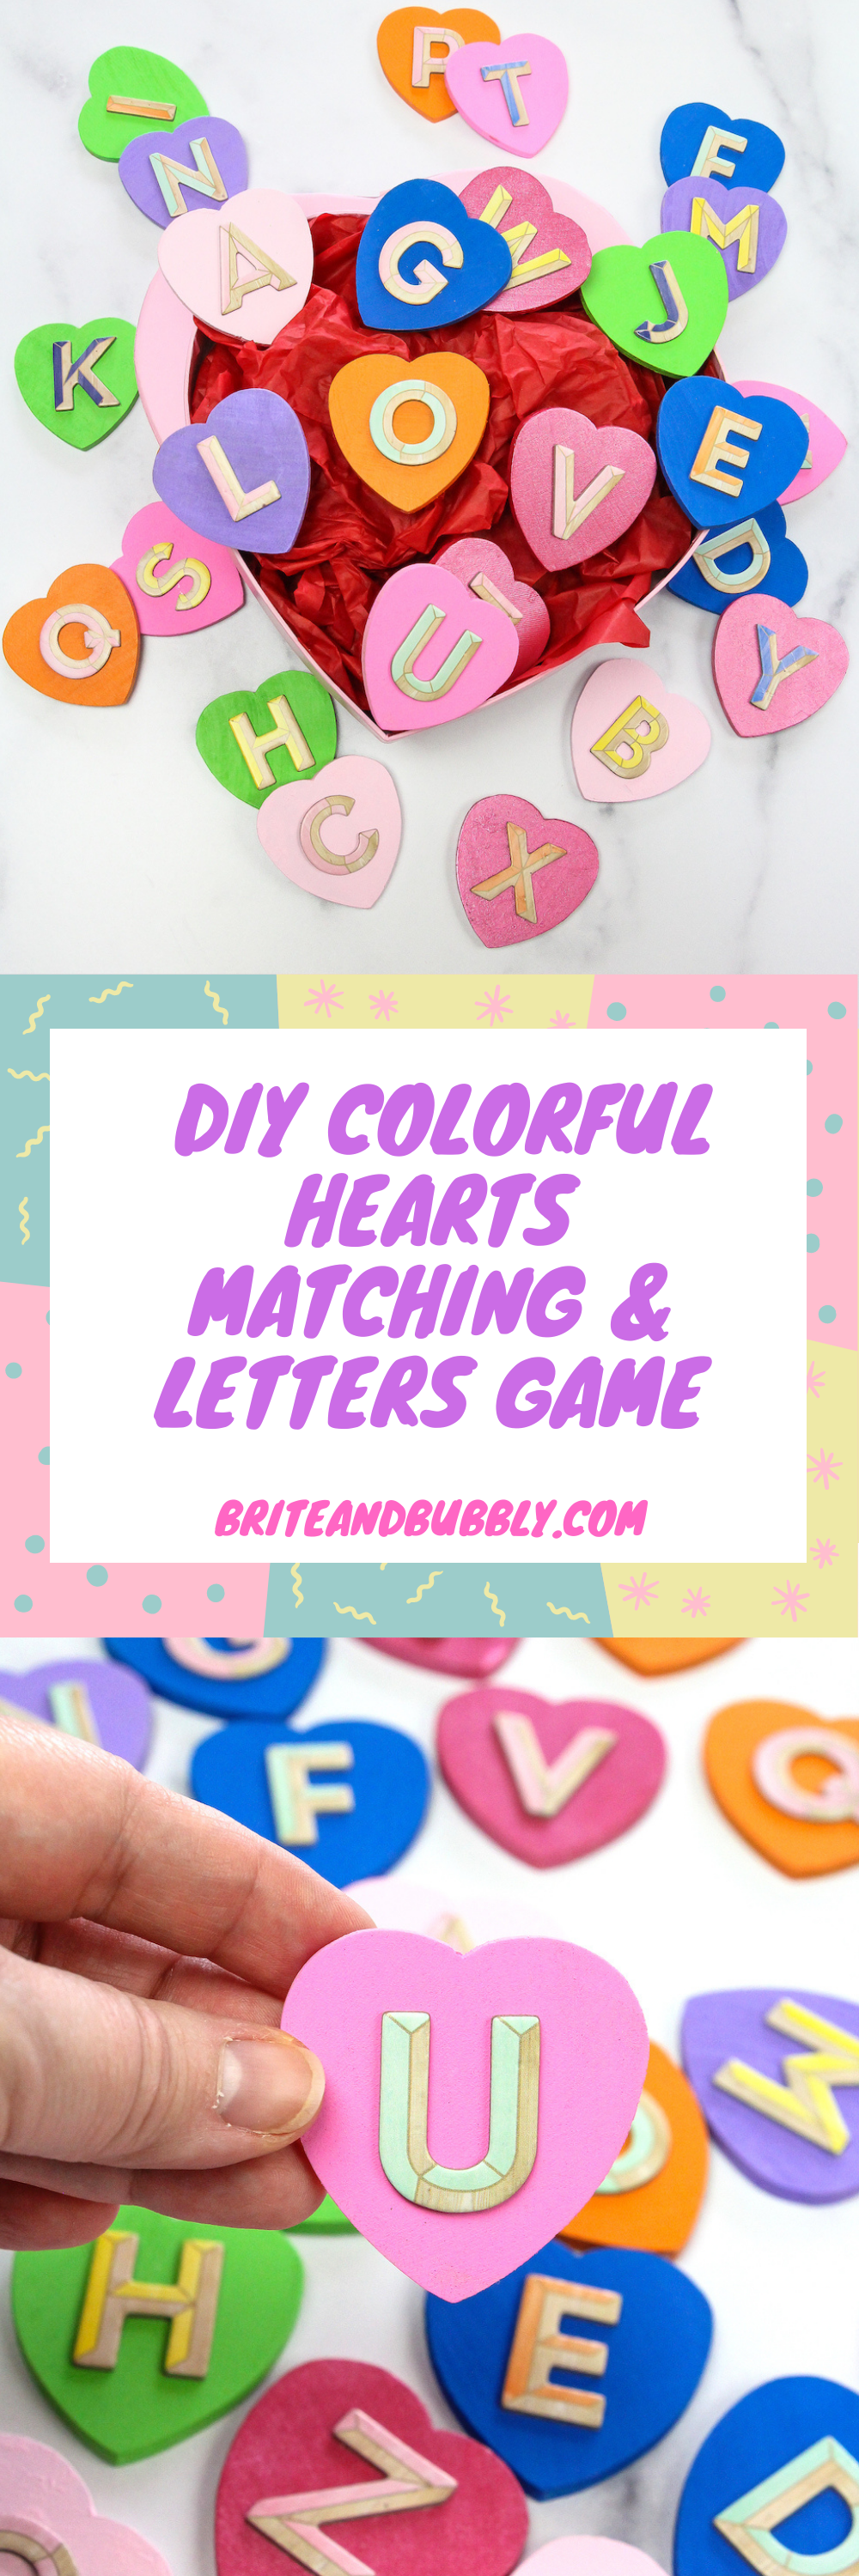 Colorful Hearts Matching & Letters Game Pin